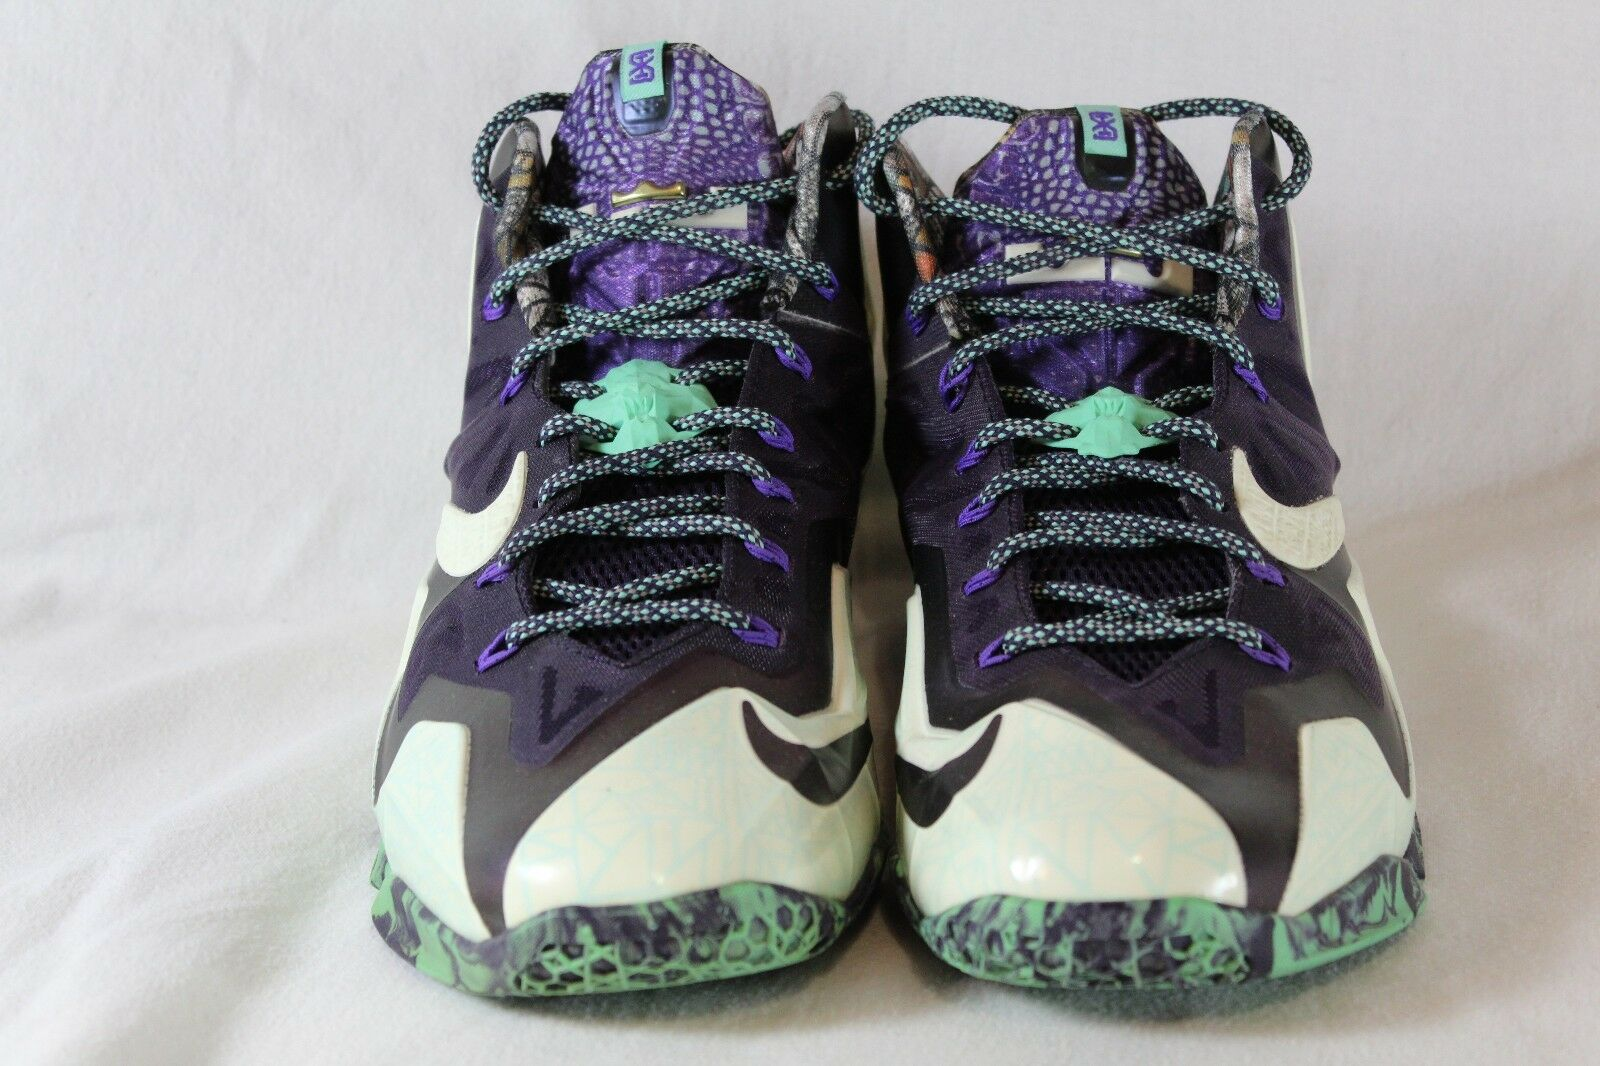 Nike Lebron 11 AS Gumbo Gumbo Gumbo League Size 10.5 647780-735 Pre-Owned Great Condition ae1f64